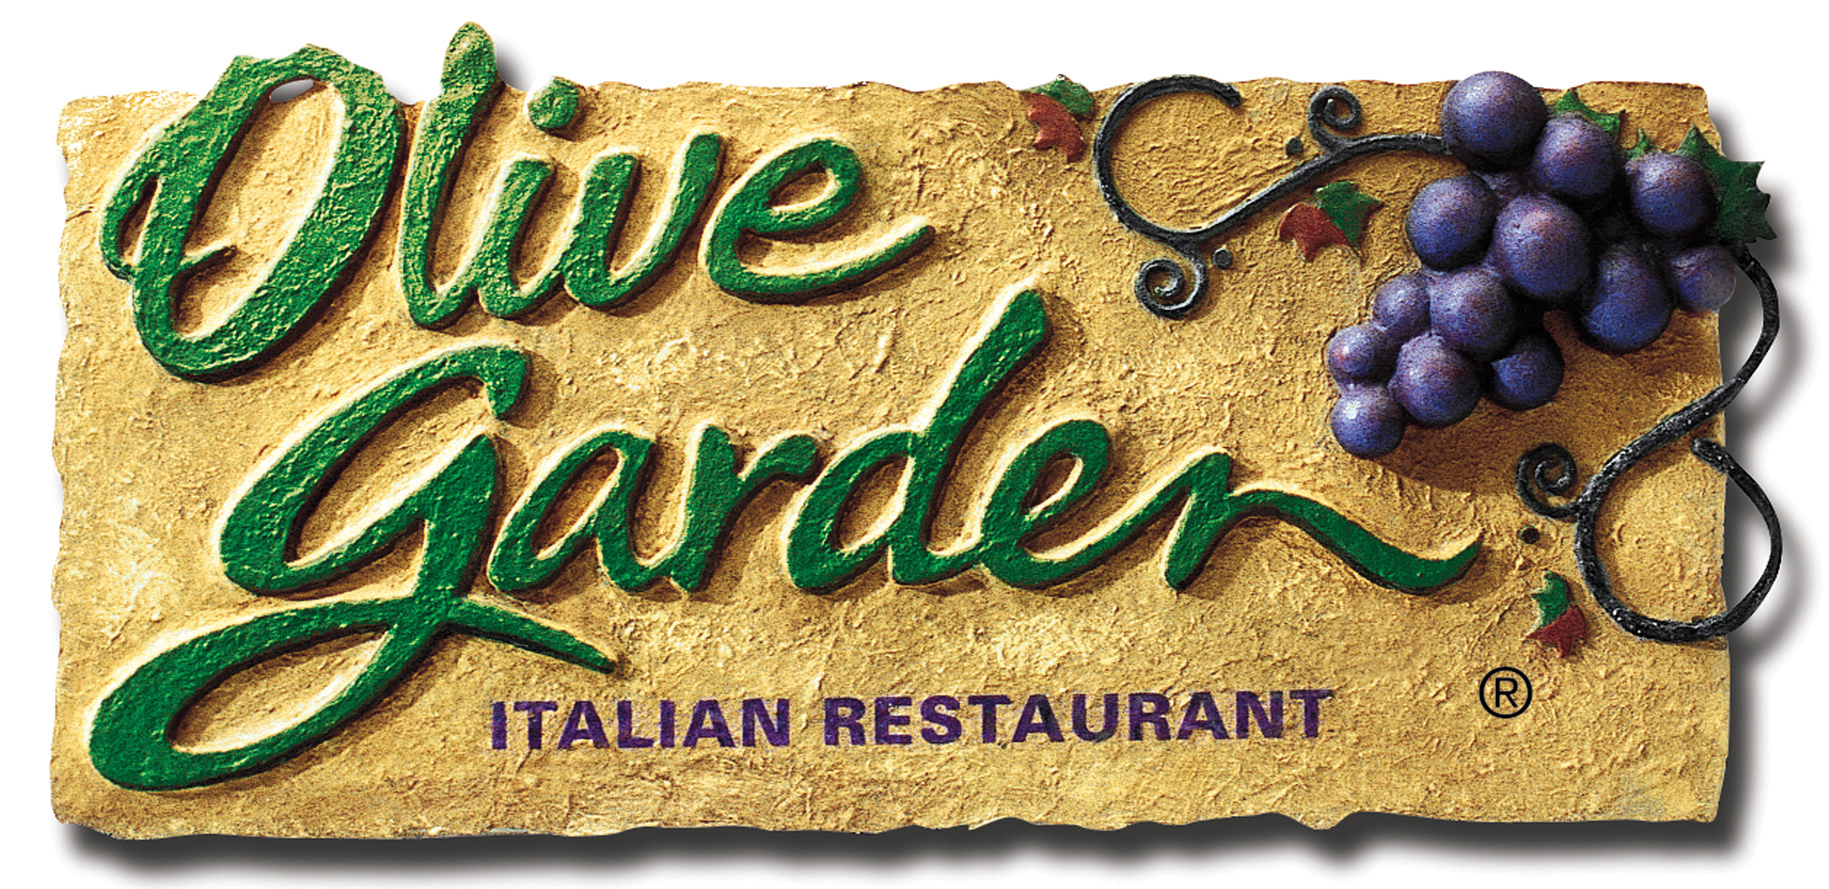 olive garden pasta tales essay contest application Olive garden pasta tales essay contest, deadline: jan 21, 2011i wanted to let you know that the olive garden is running a pasta tales essay contest top prize is a trip to new york city and a savings bond of $2500 at maturitythe contest is open to all legal residents of the united states and canada in grades 1-12.